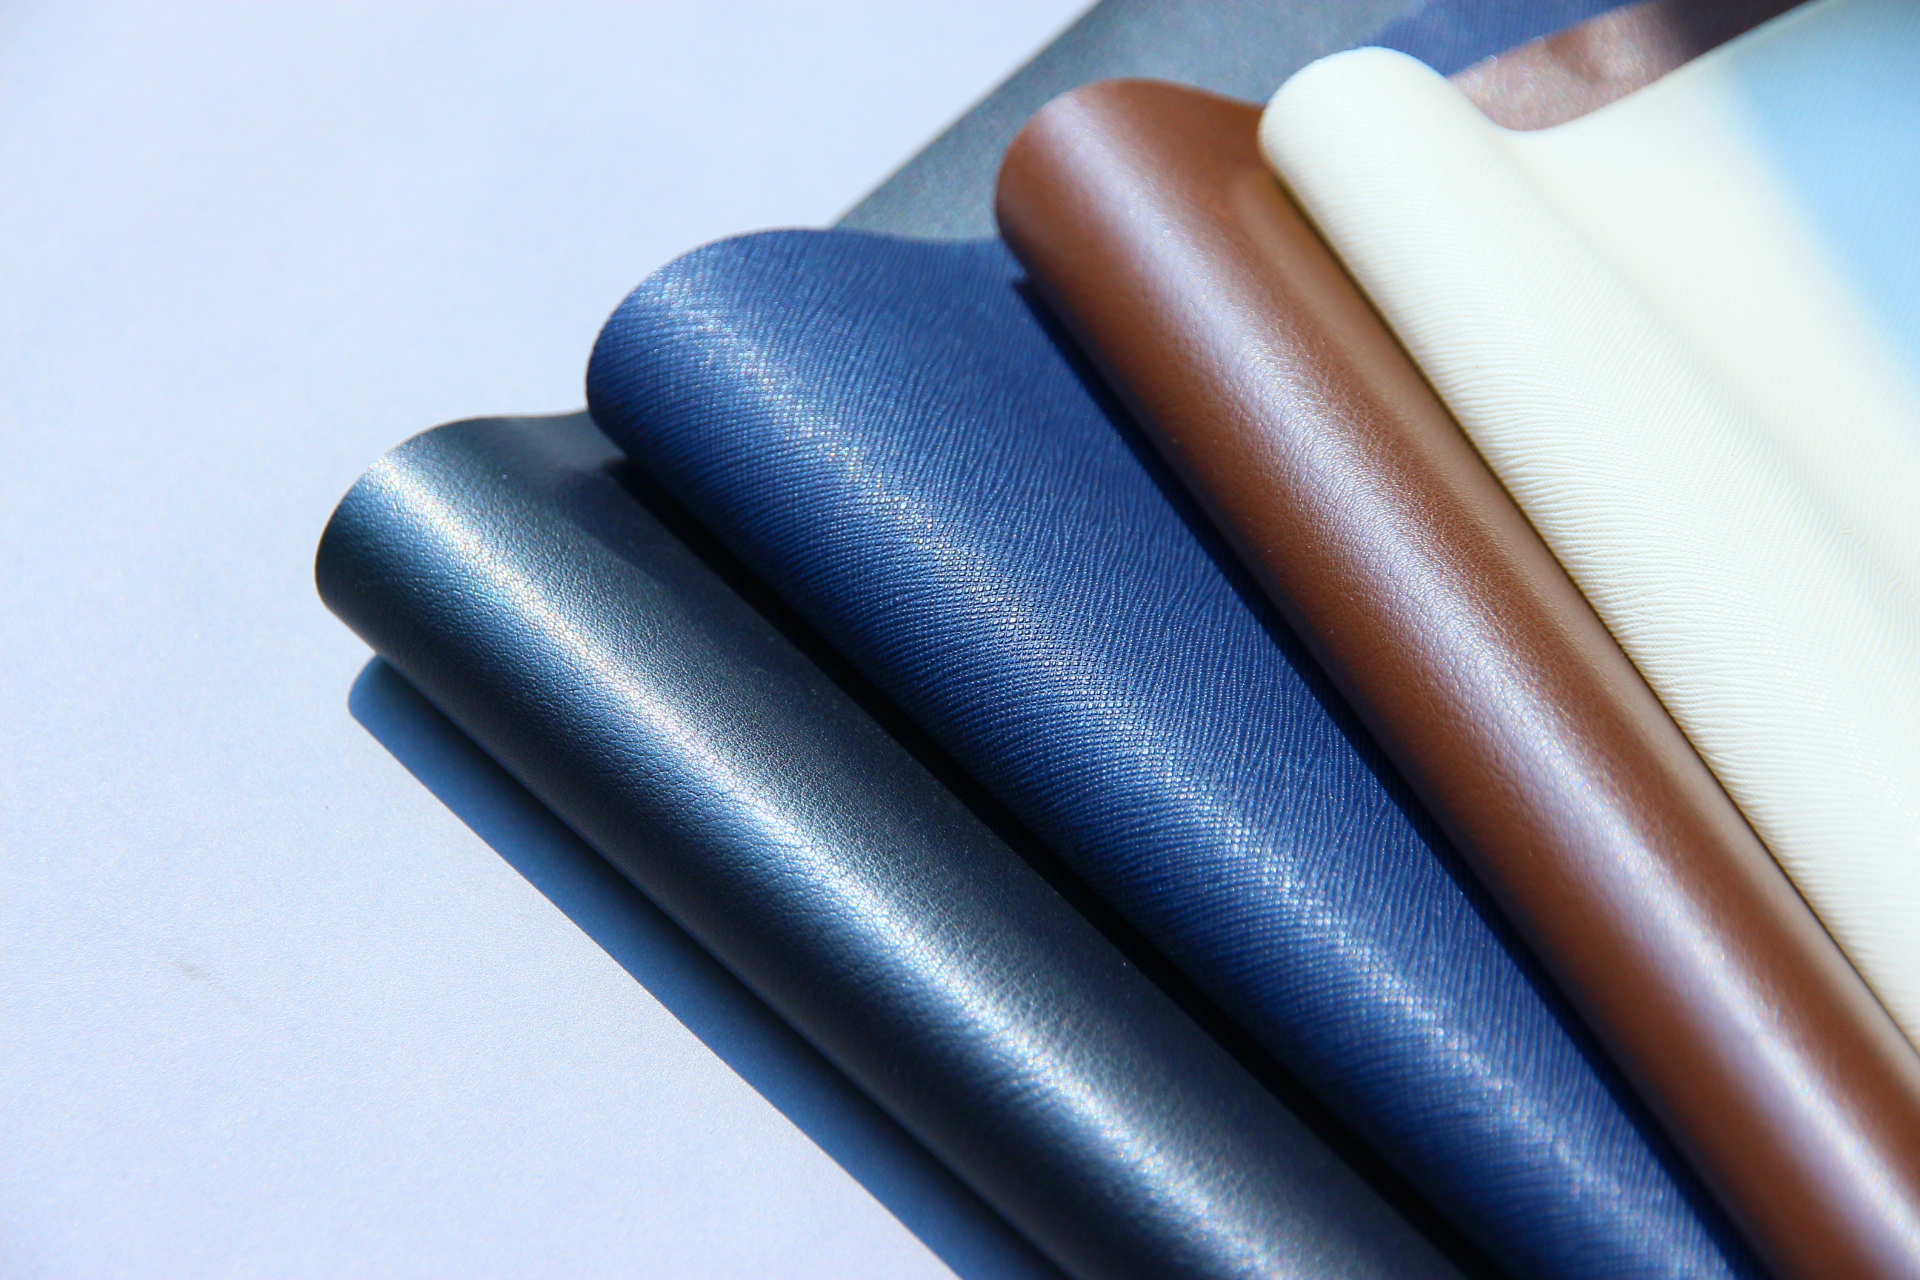 General Silicones Joining Plastic-Free Vegan Leather Manufacturers